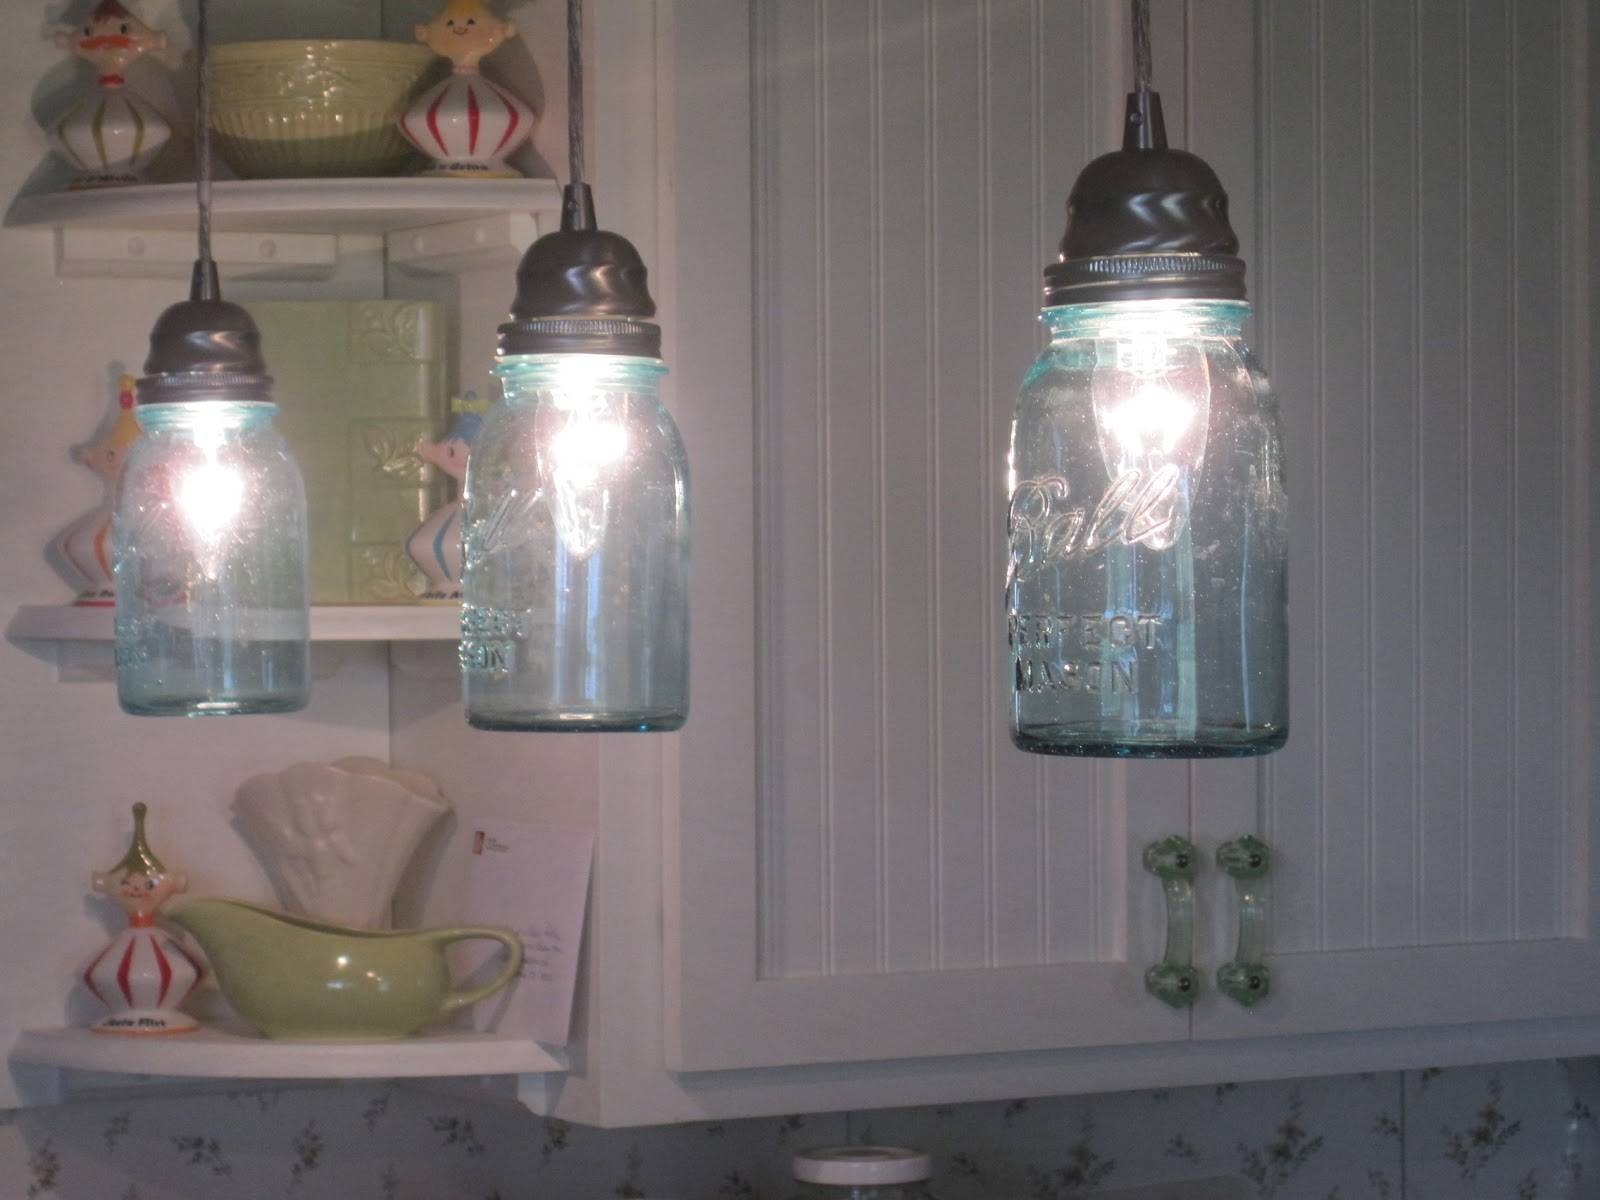 Fresh Buy Mason Jar Pendant Light #12127 regarding Mason Jar Pendant Lights For Sale (Image 3 of 15)